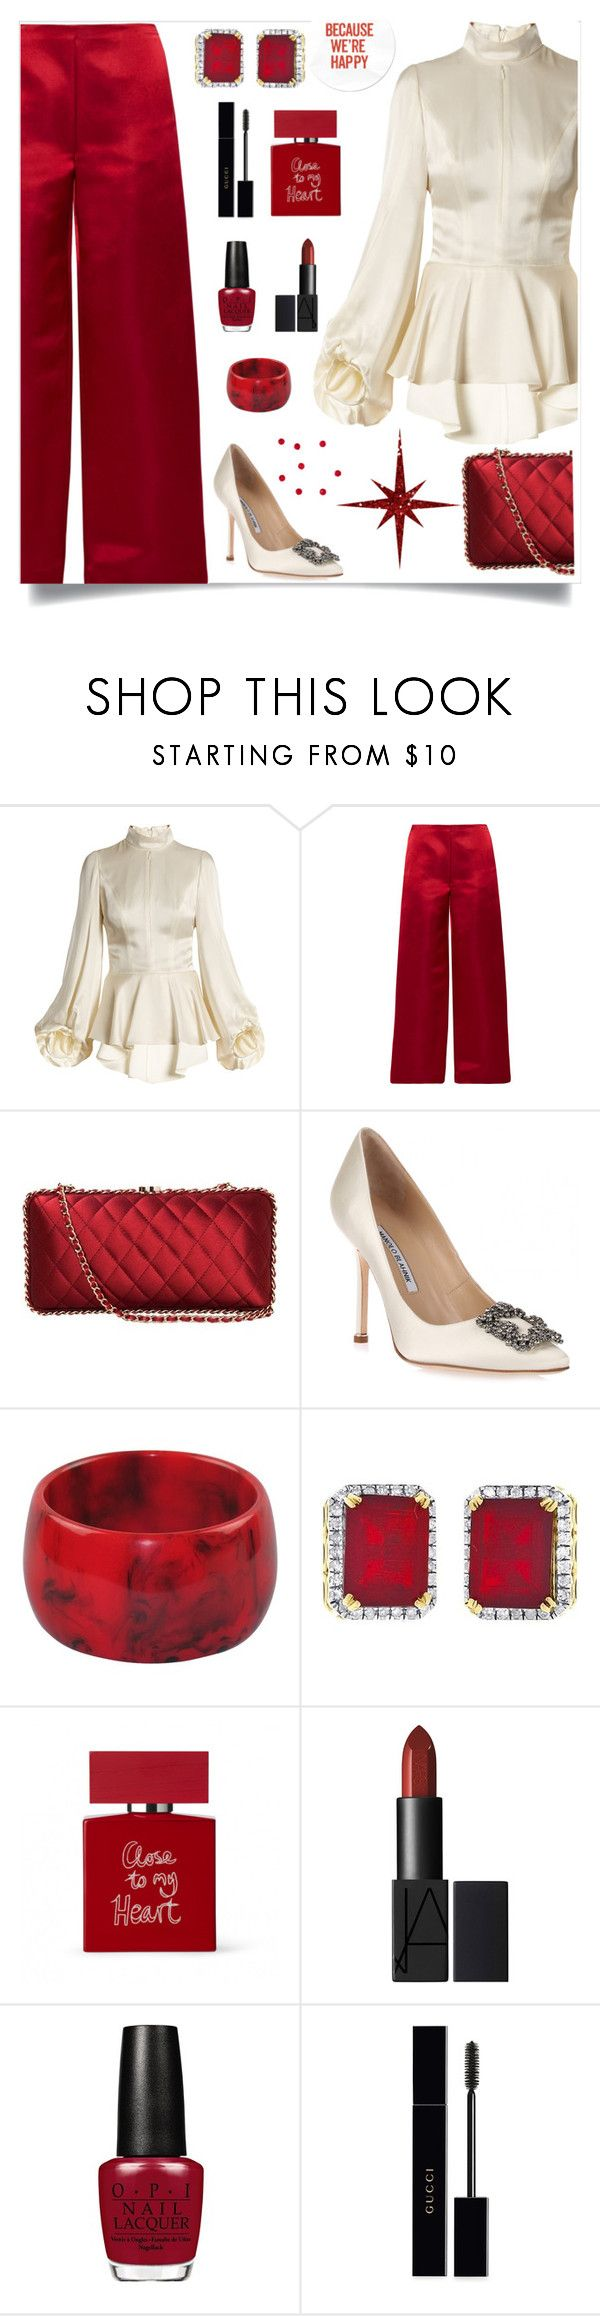 """""""Satin Dreams"""" by cindy-for-fashion ❤ liked on Polyvore featuring Andrew Gn, The Row, Chanel, Manolo Blahnik, Bella Freud and Gucci"""